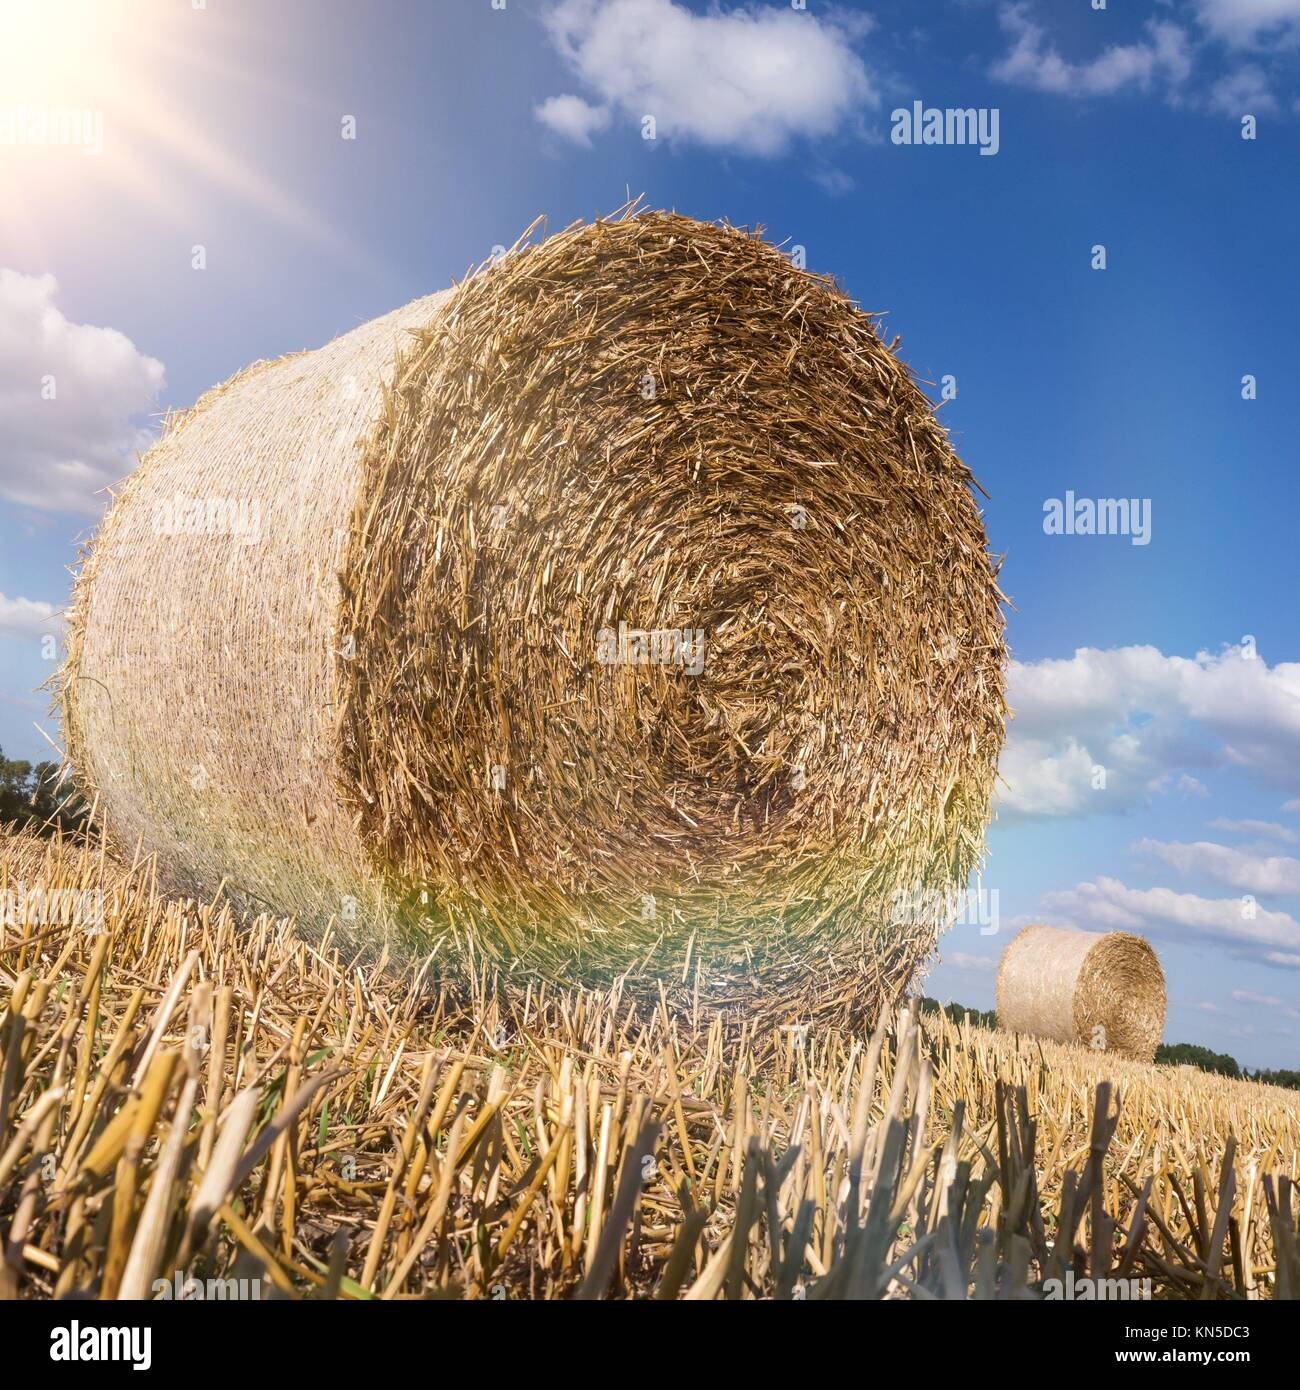 Straw bales in late summer. - Stock Image